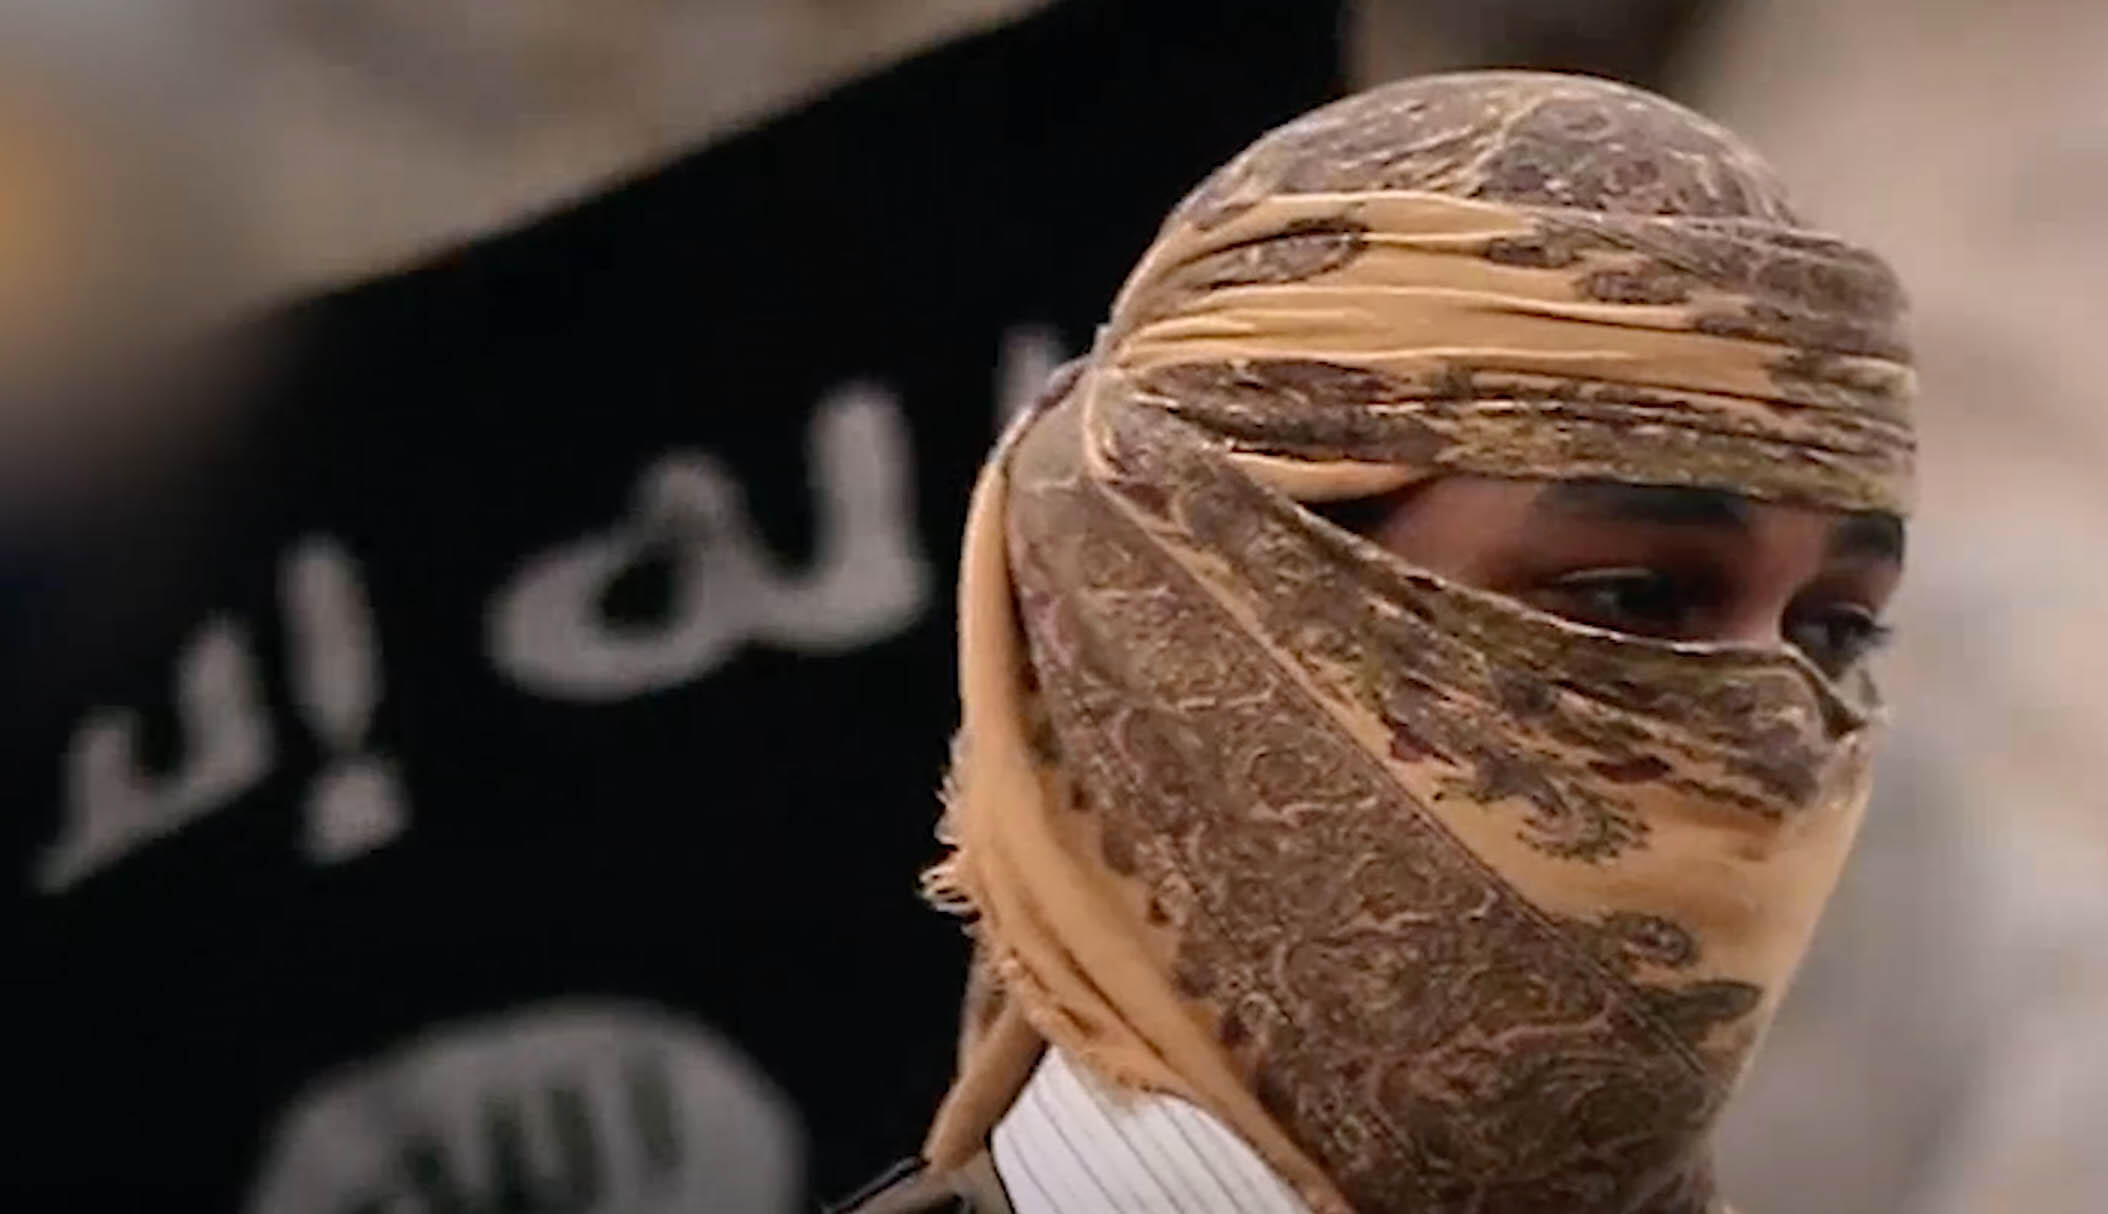 46 Surviving In The Islamic State Caliphate